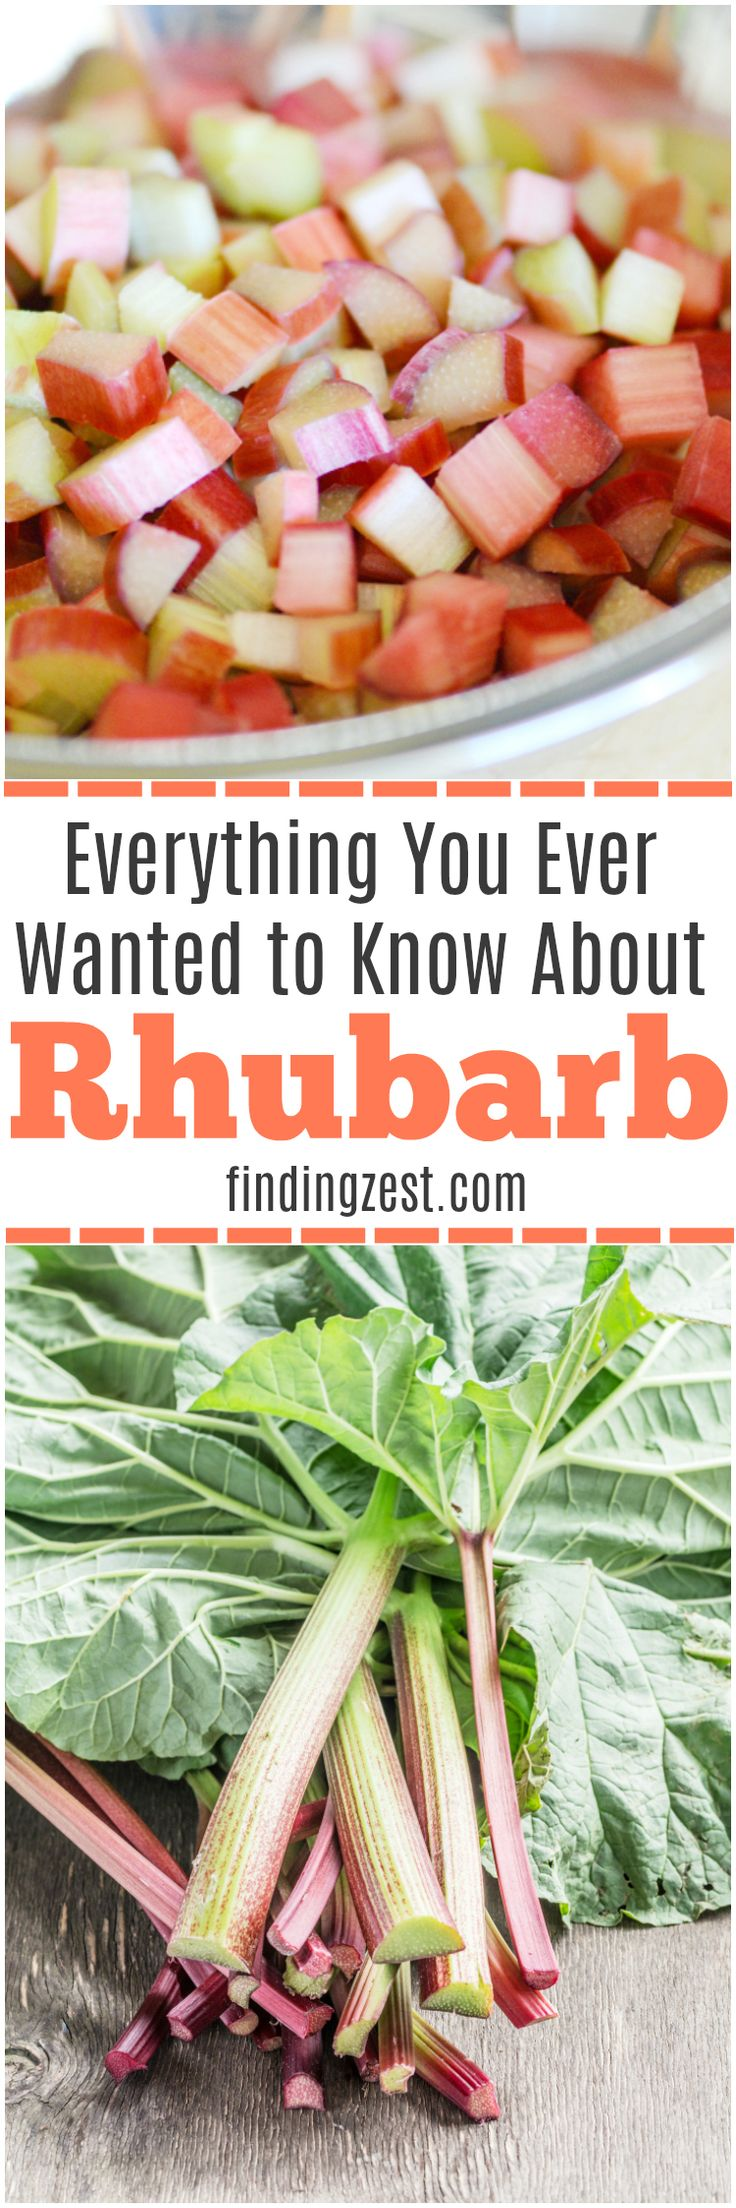 What is Rhubarb? Find out everything you need to know about rhubarb including what rhubarb tastes like, how to grow rhubarb, how to harvest rhubarb and what to do with rhubarb!  #gardening #rhubarb